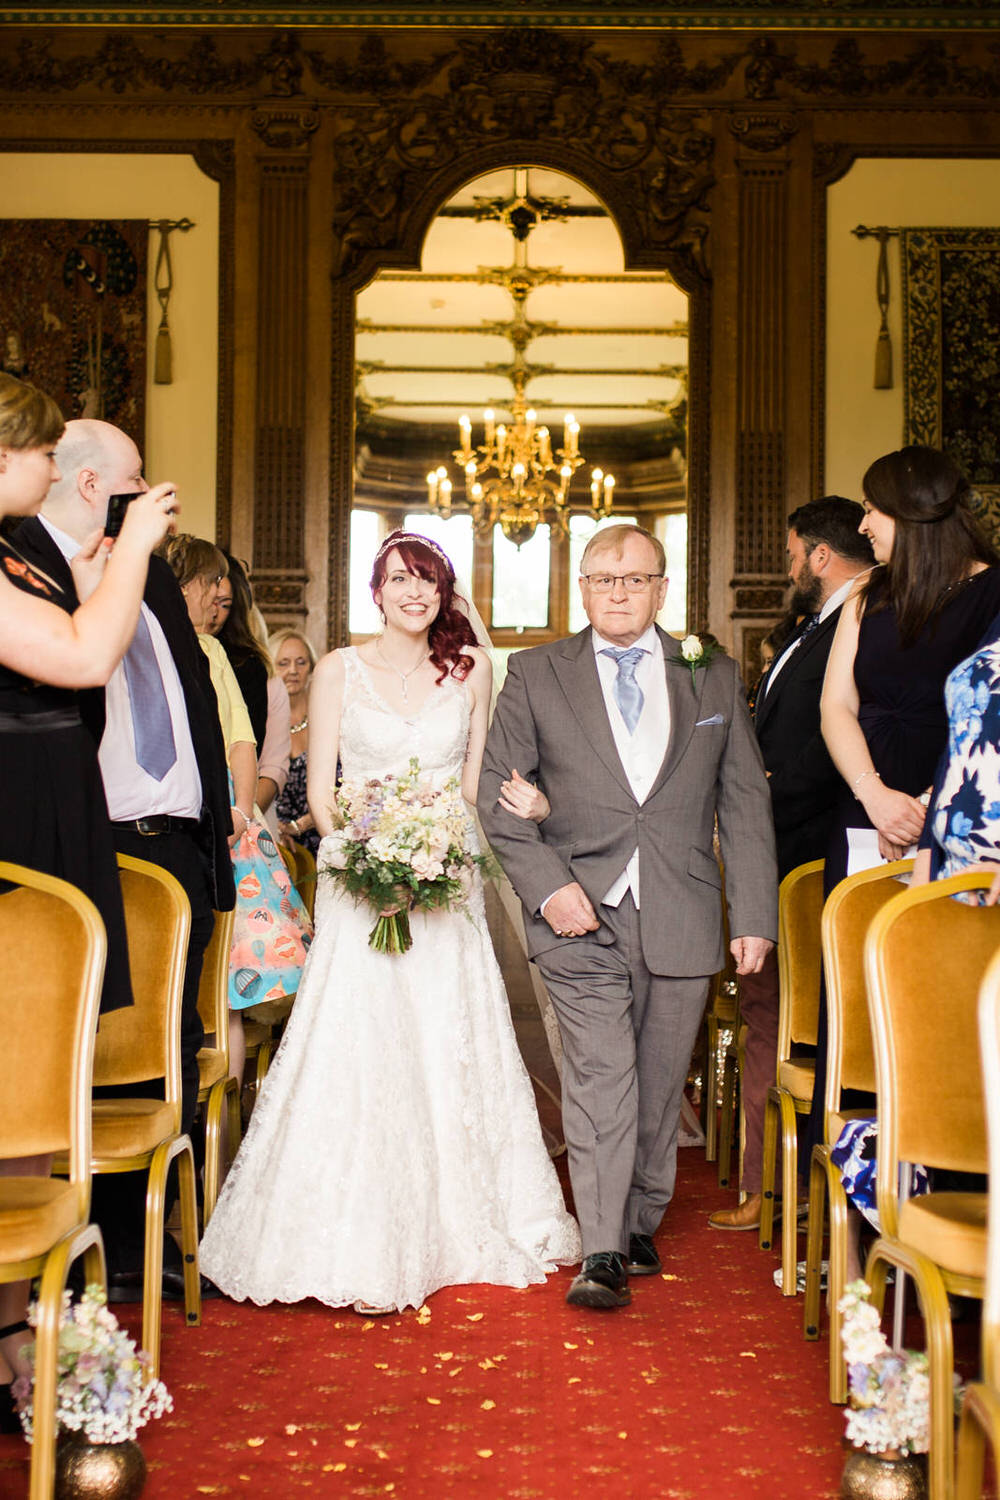 Special-Day-Photography-Manor-By-the-Lake-Cheltenham-The-Wedding-Venue-at-Manor-By-The-Lake-The-bride-walks-down-the-aisle-inside-the-venue.jpg